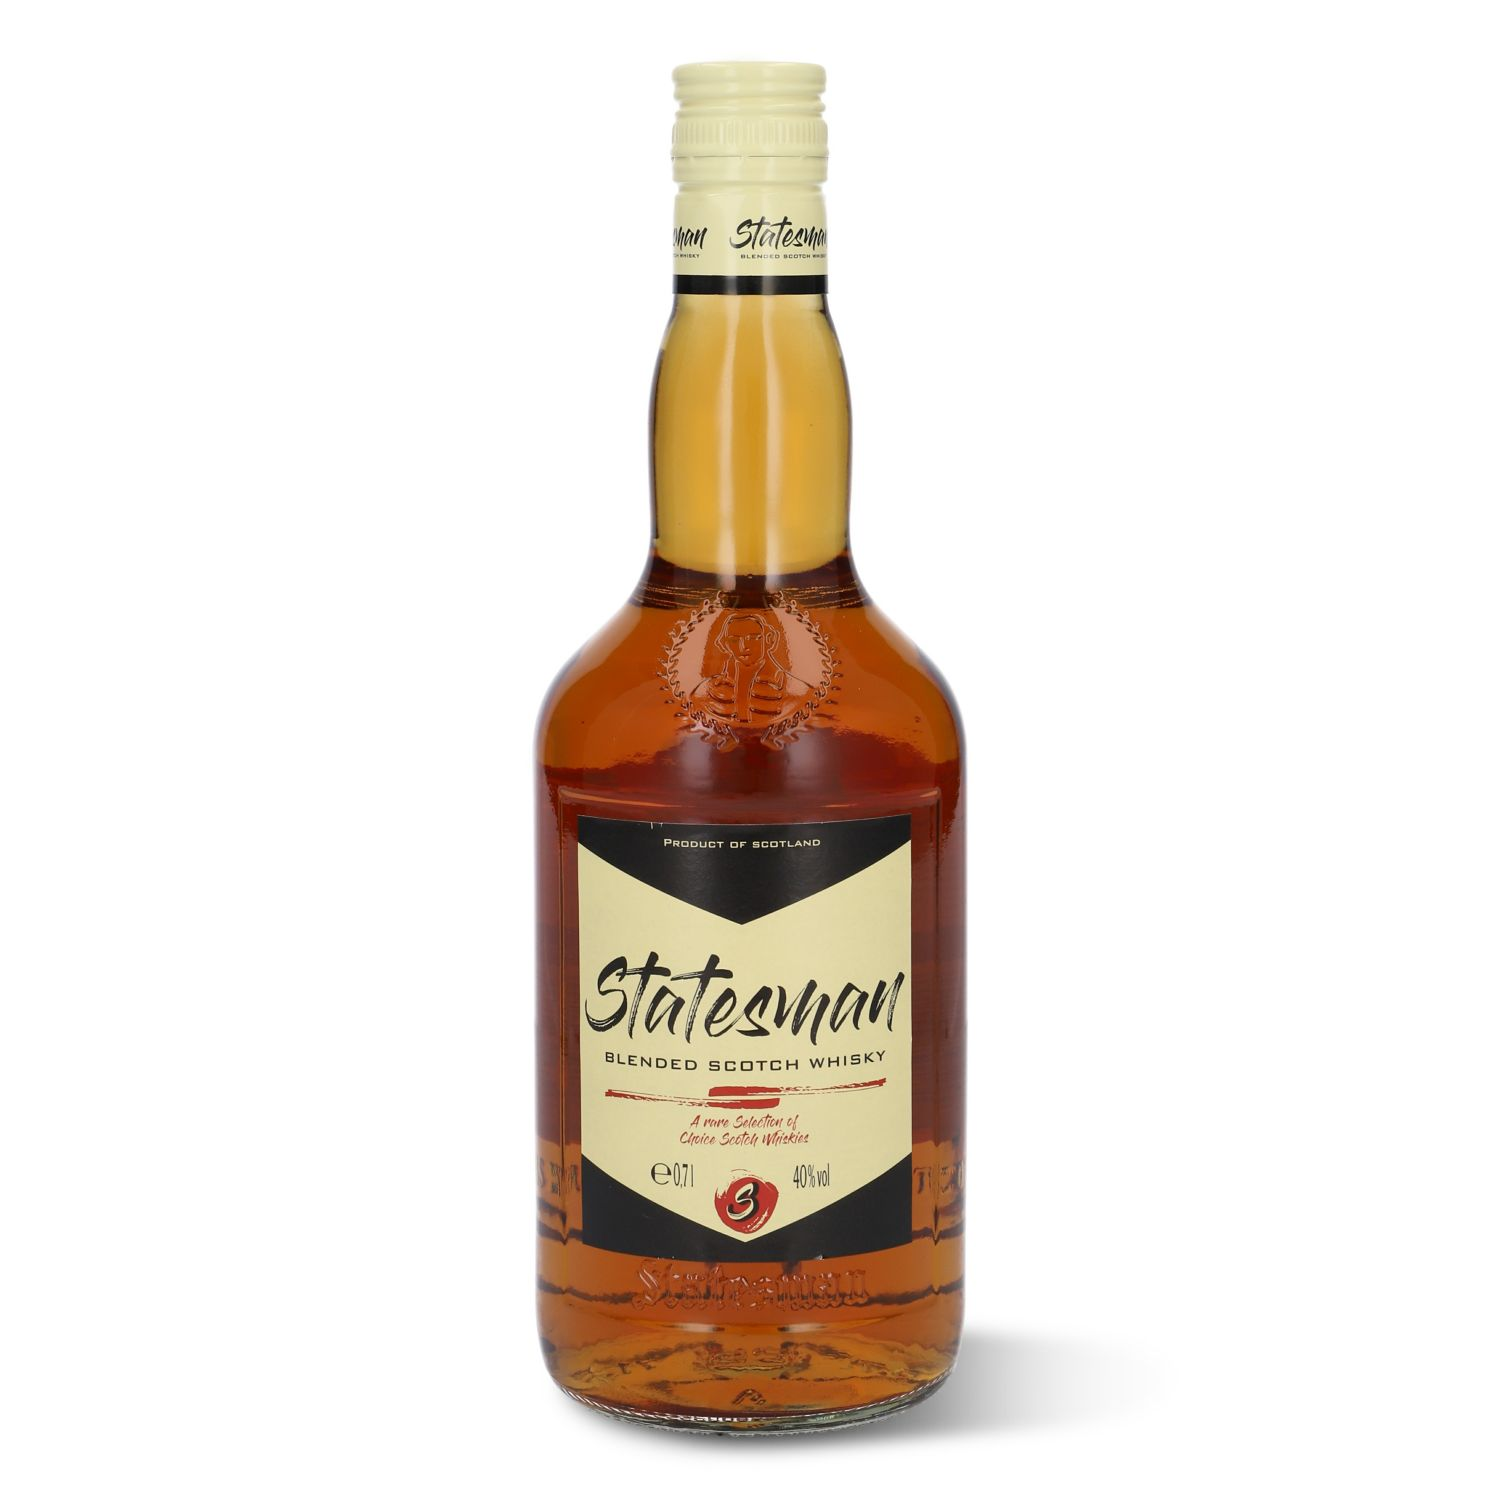 Statesman Blended Scotch Whisky 0,7 l